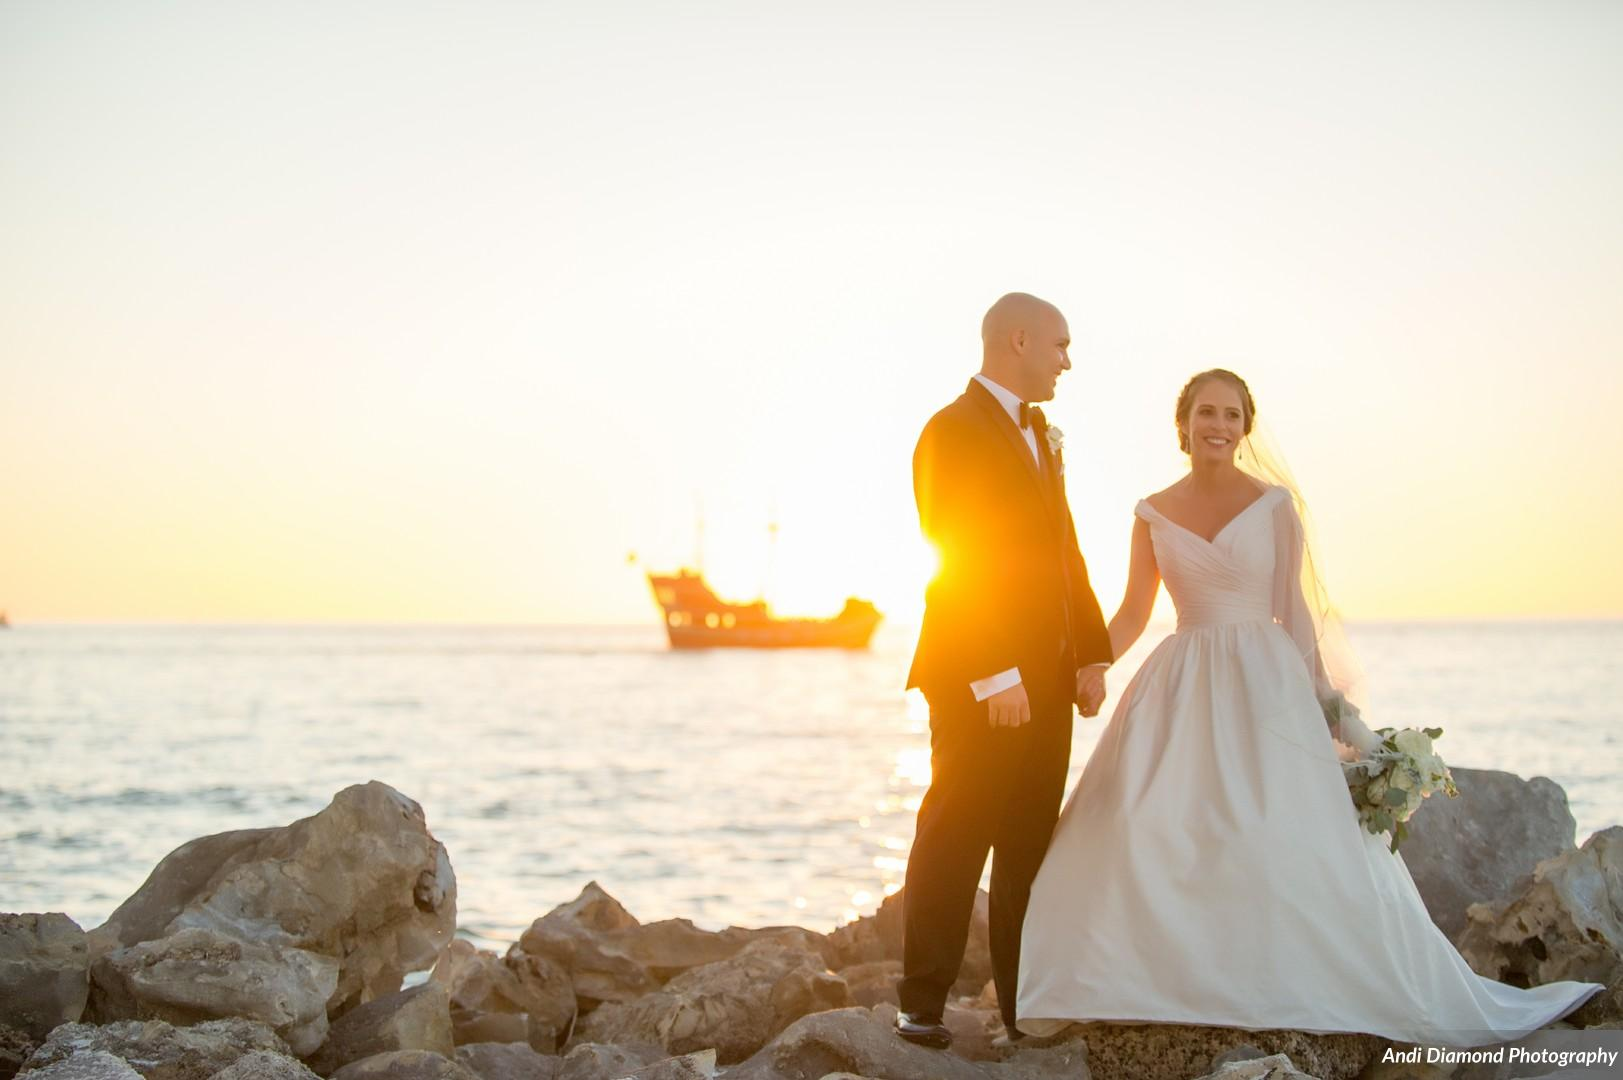 And of course no wedding photos on Clearwater Beach would be complete without the famous pirate ship at sunset!